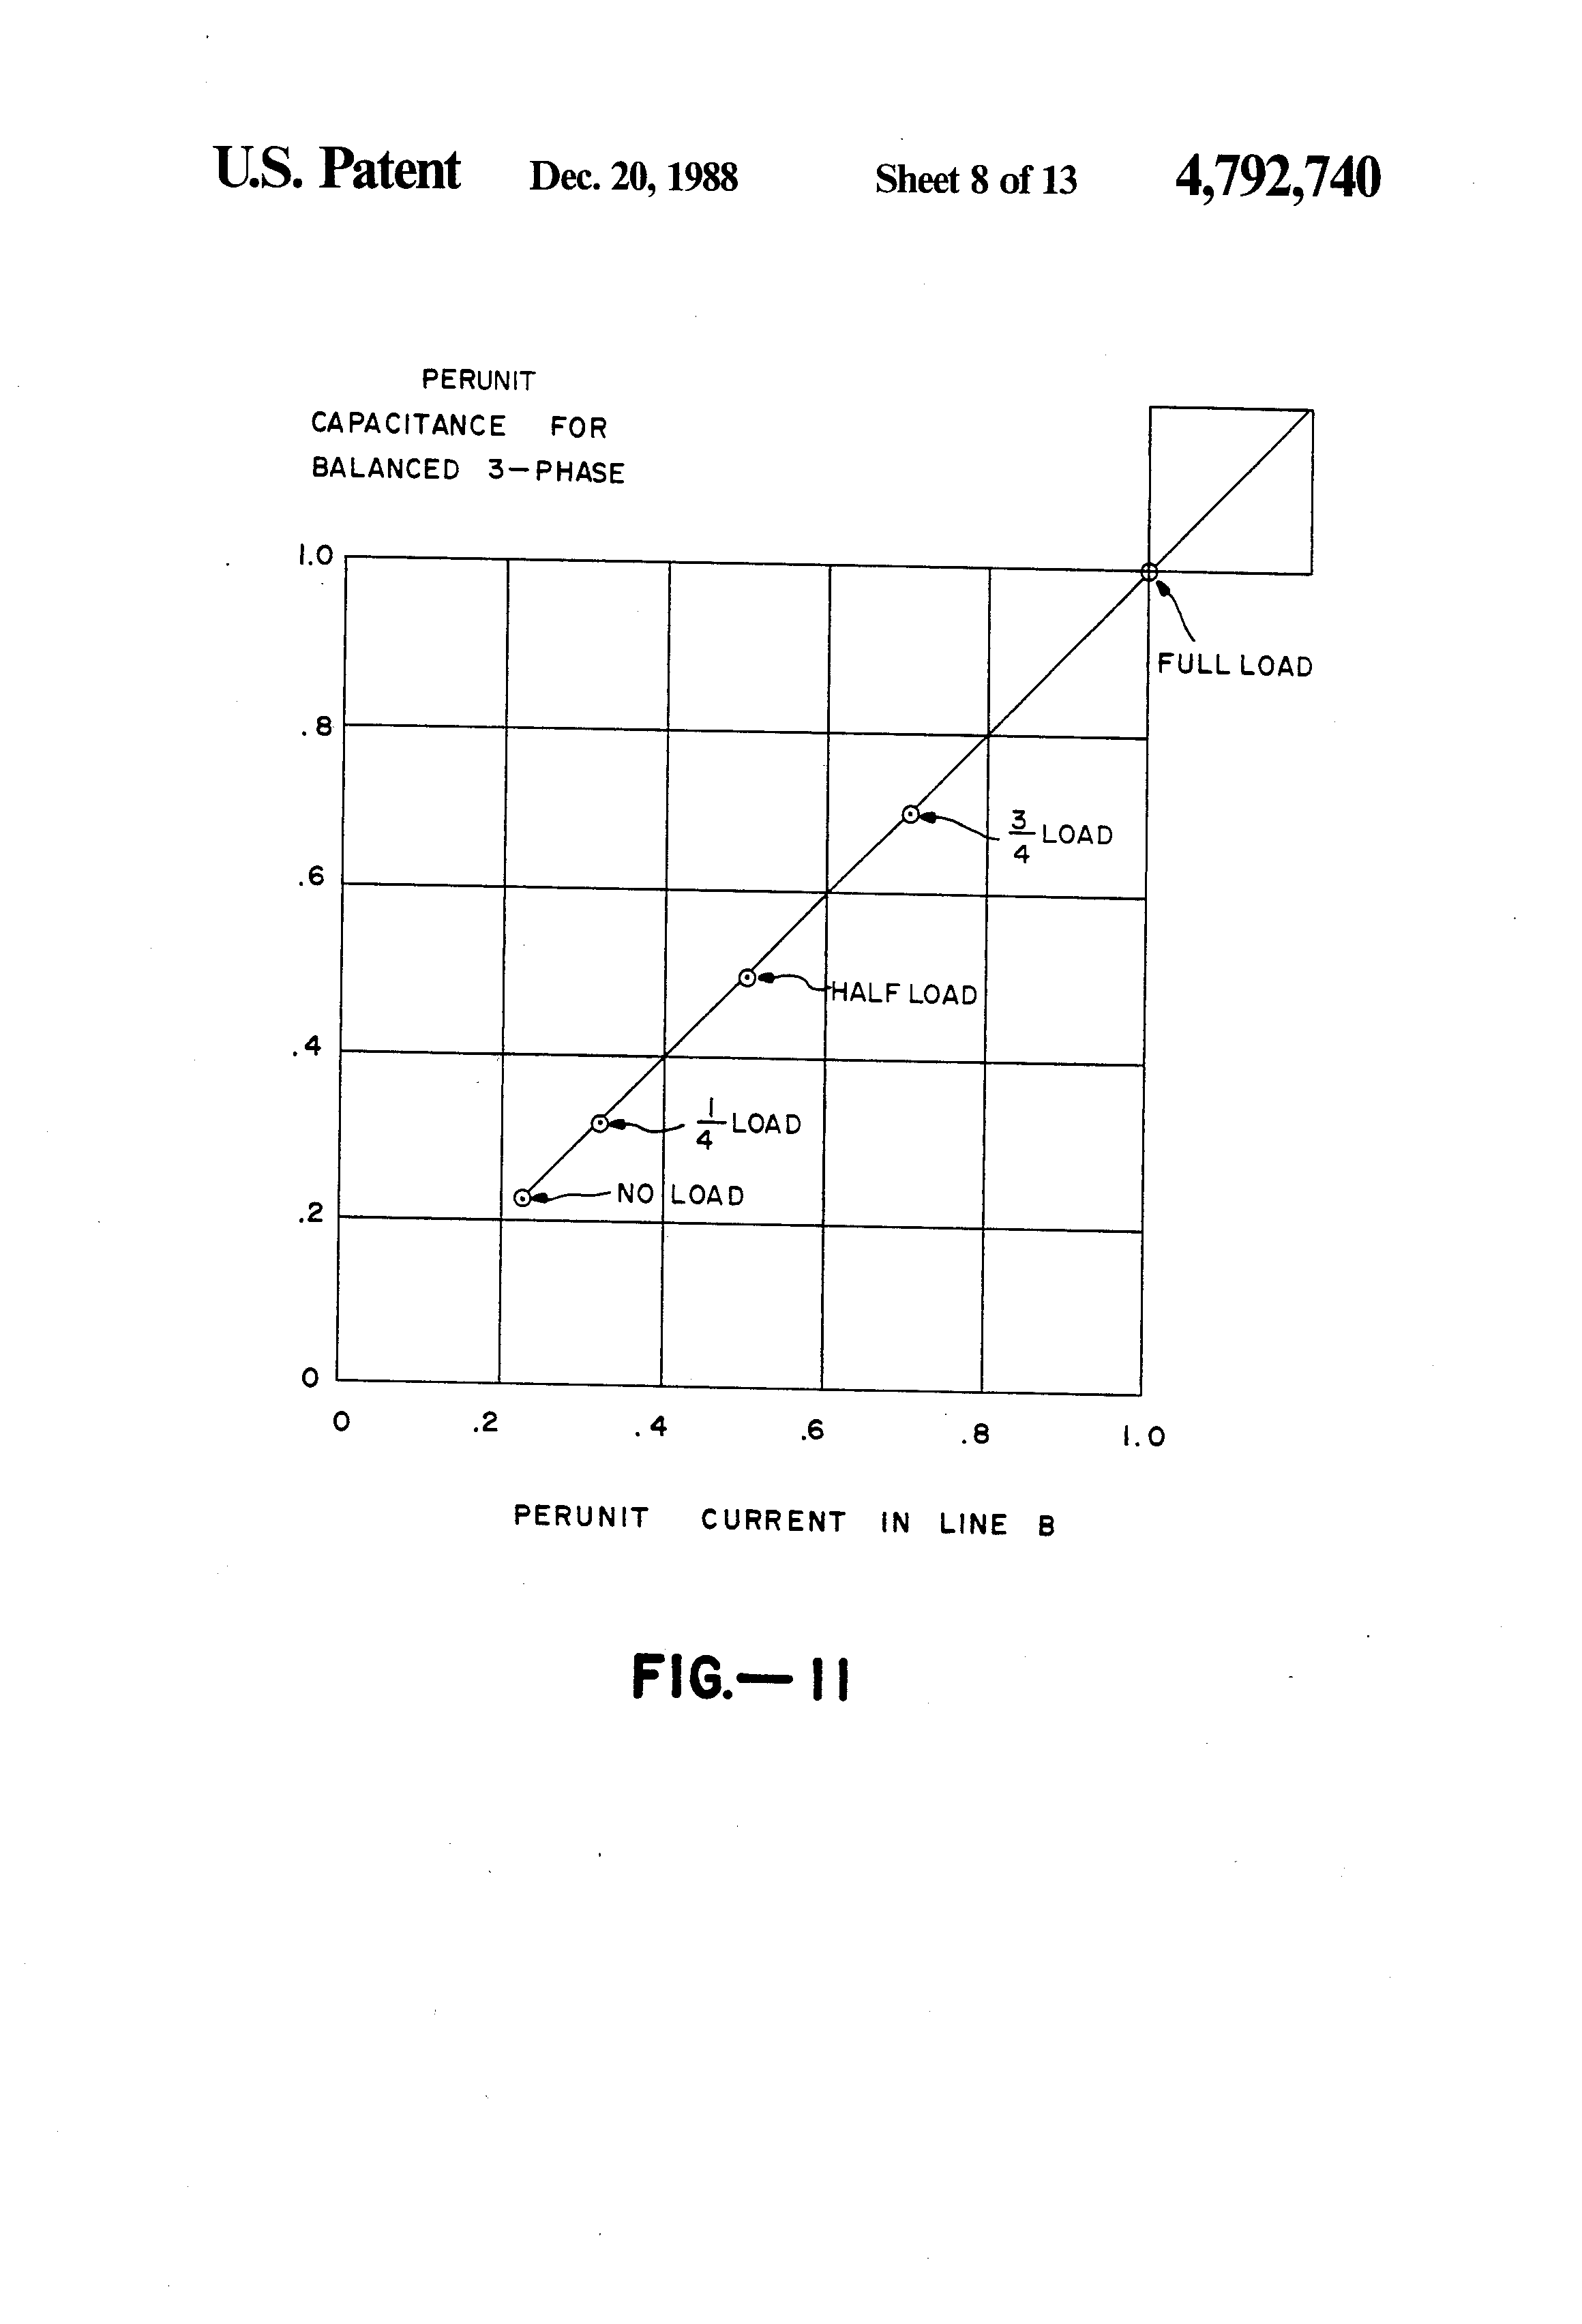 Clarke Single Phase Motor Wiring Diagram 40 Images Ac Induction On Us4792740 8 Patent Three With